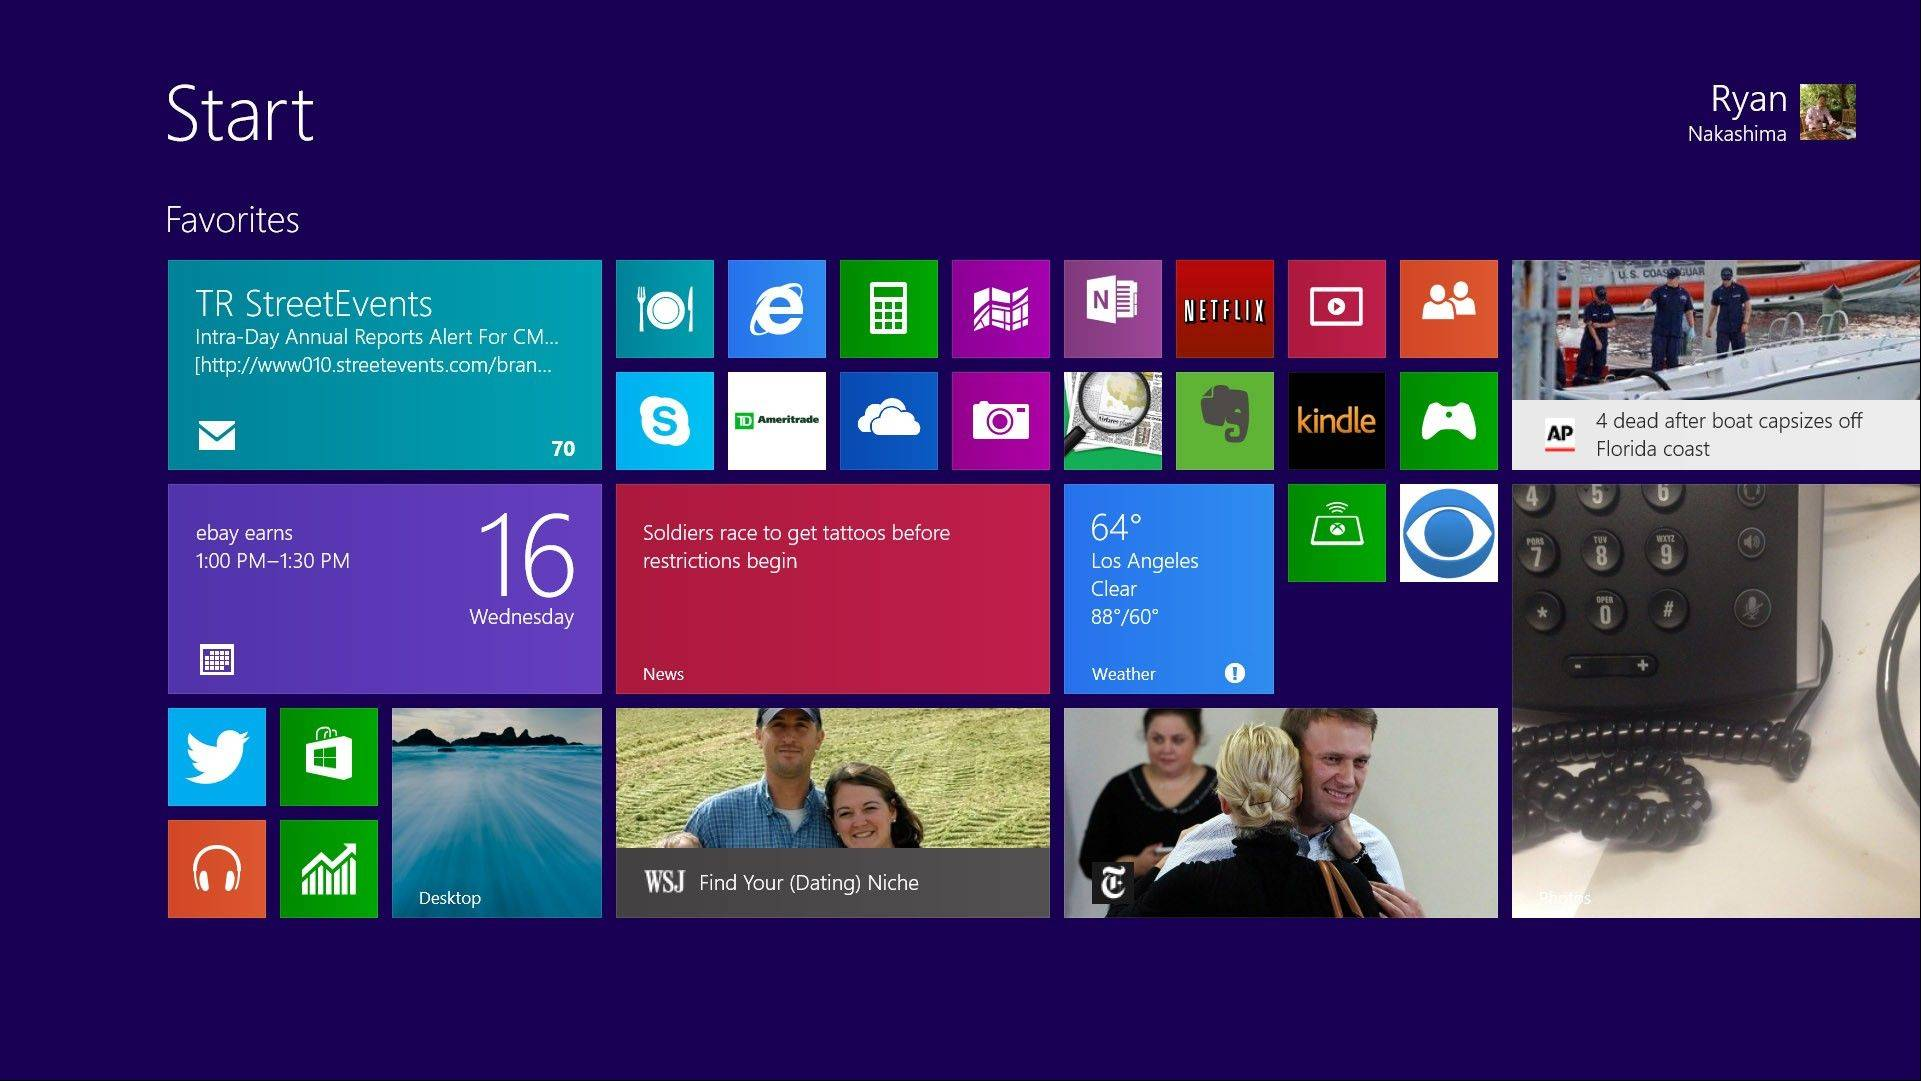 Review: Windows 8.1 improves, but far from perfect